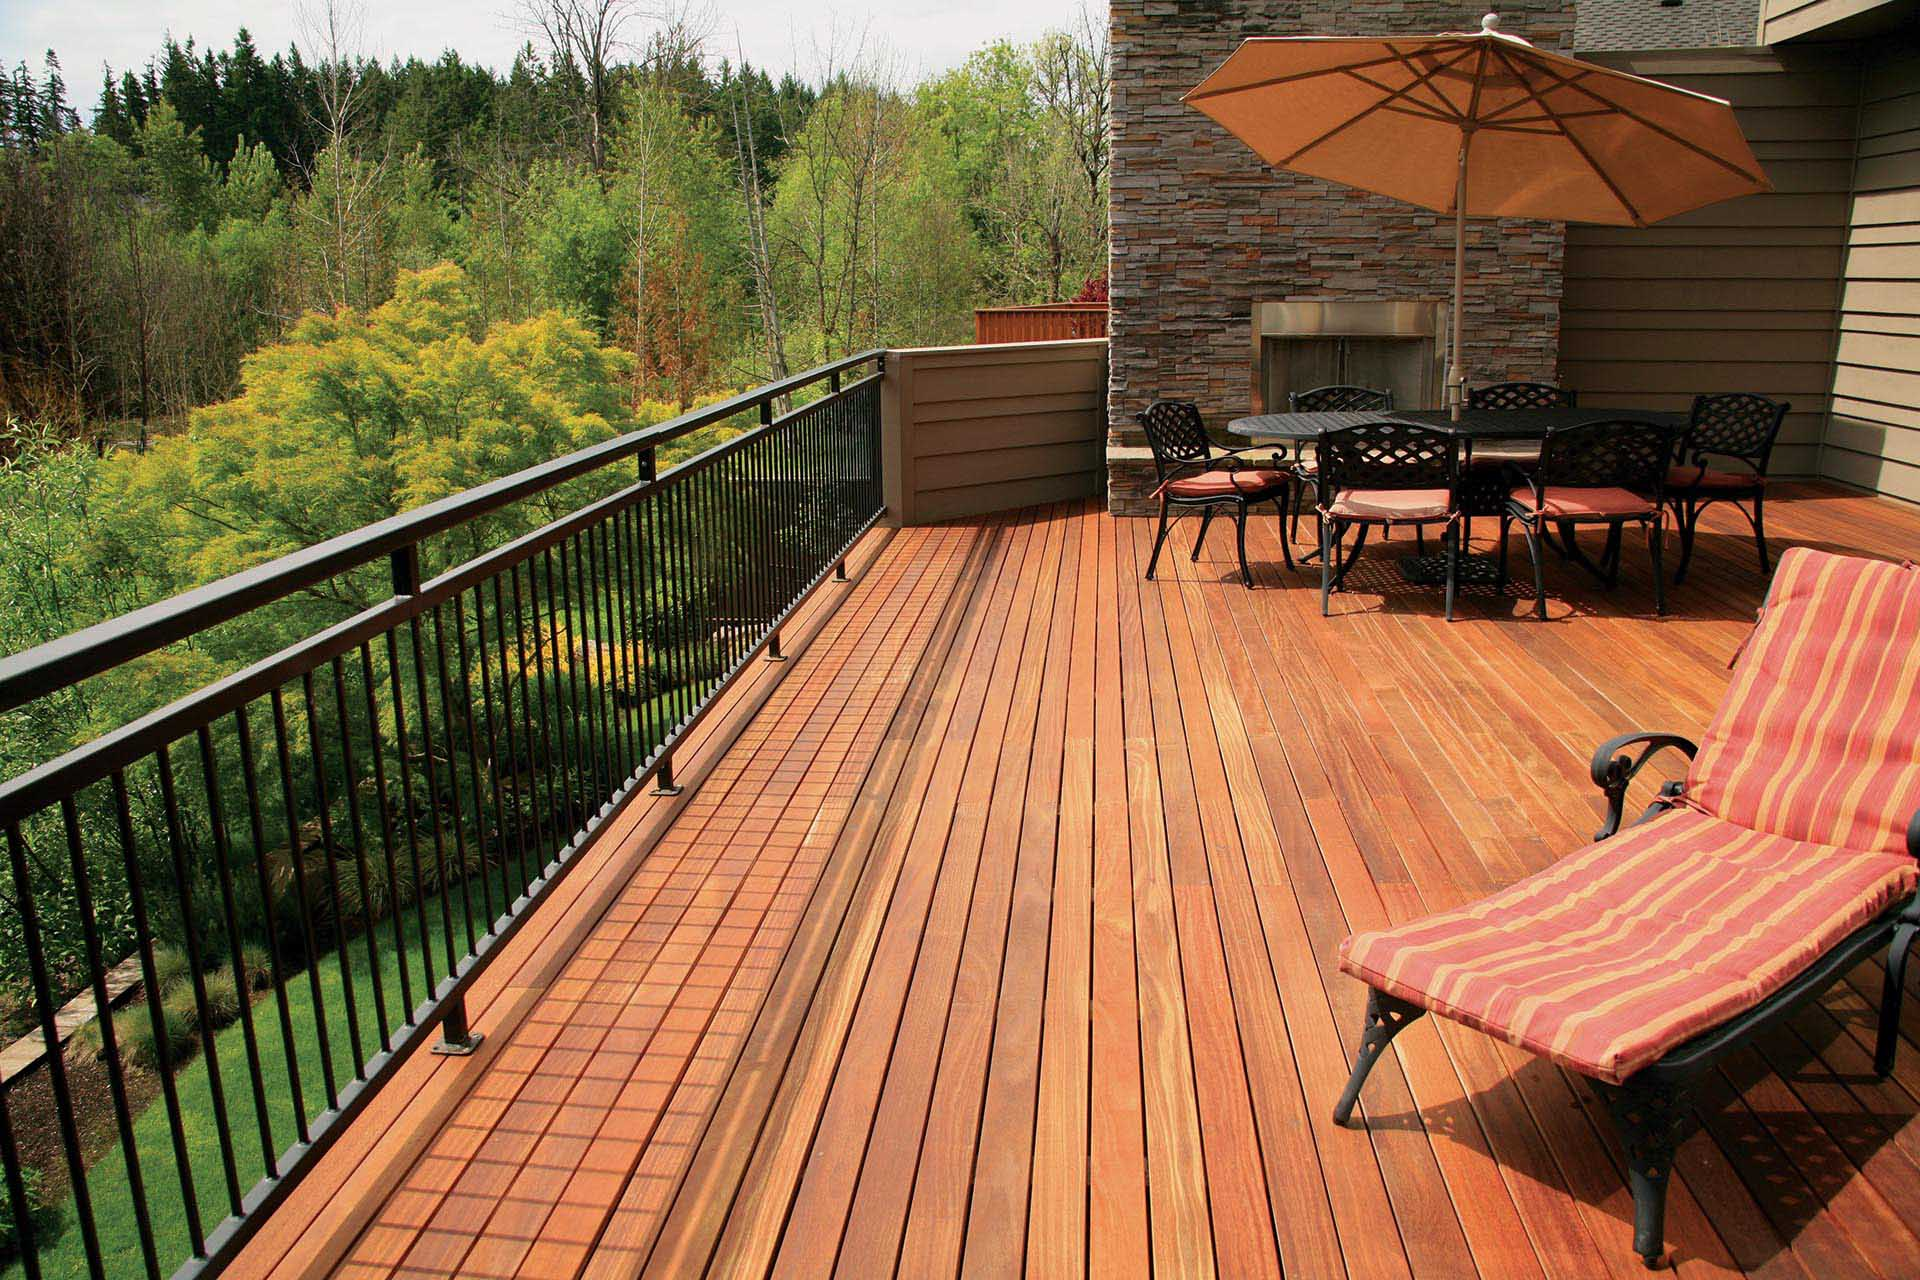 Cumaru Decking 1x4 Backyard Paradise 1.jpg